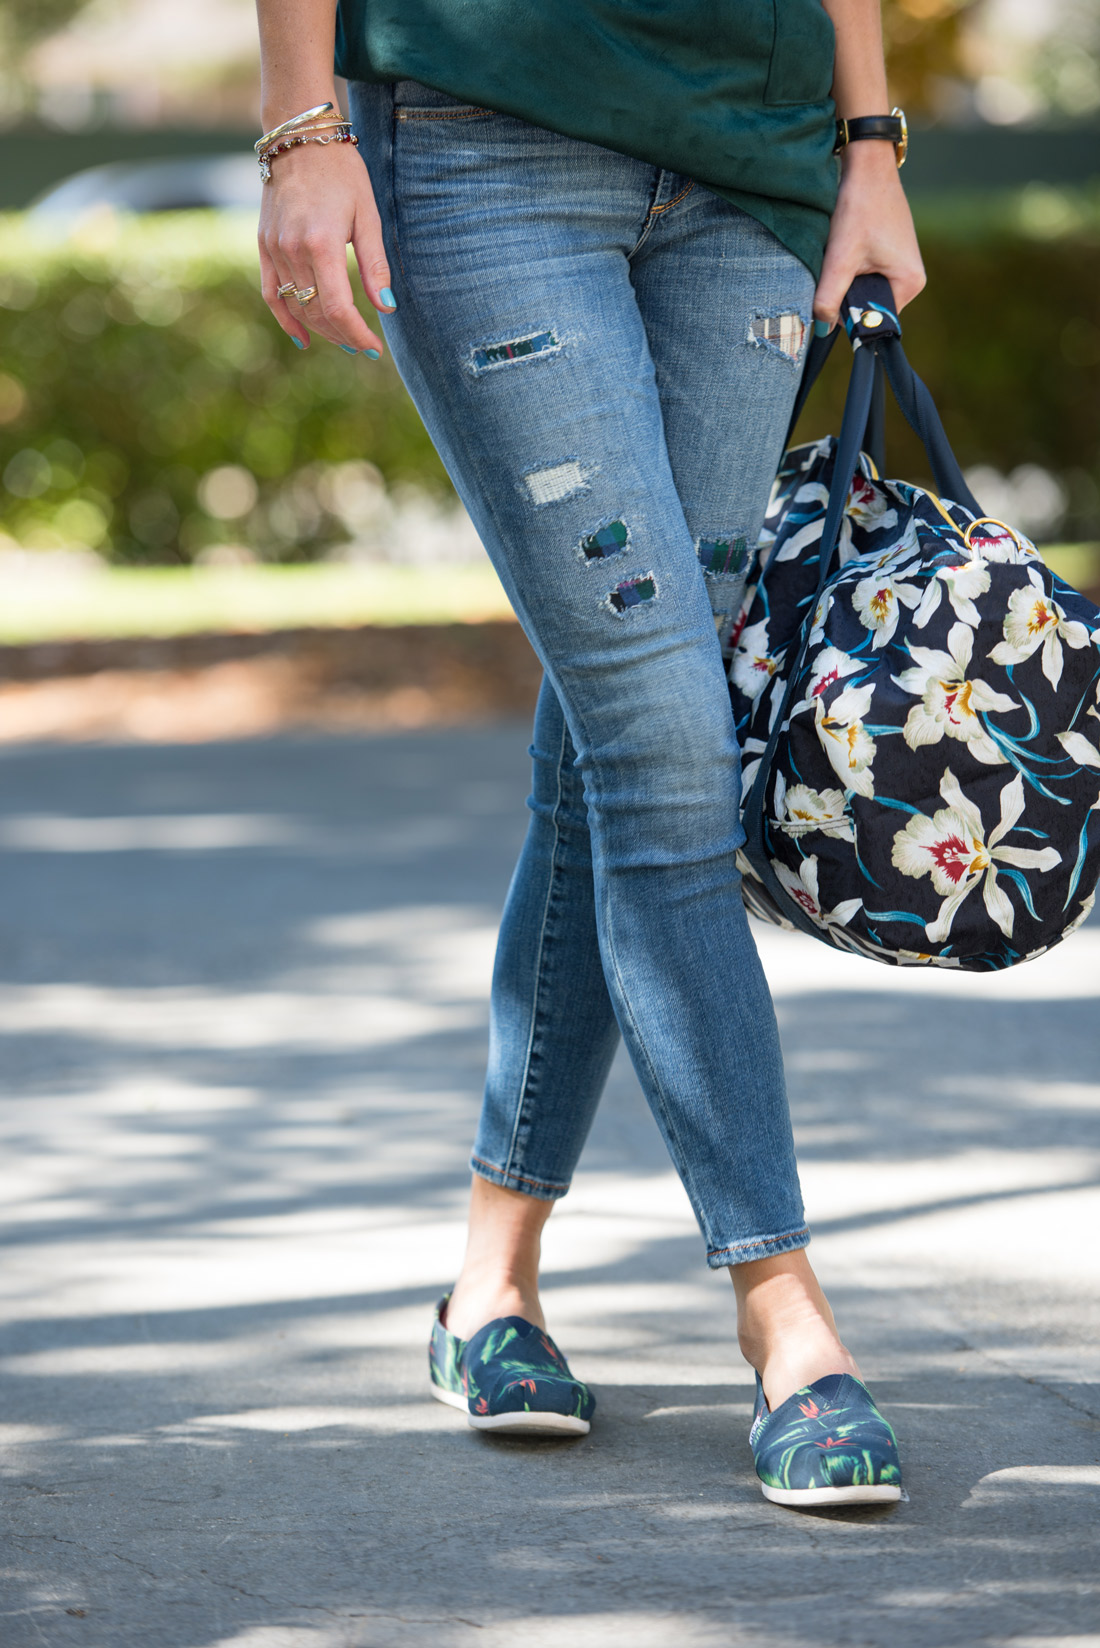 bag-at-you-fashion-blogger-abercrombie-jeans-and-toms-shoes